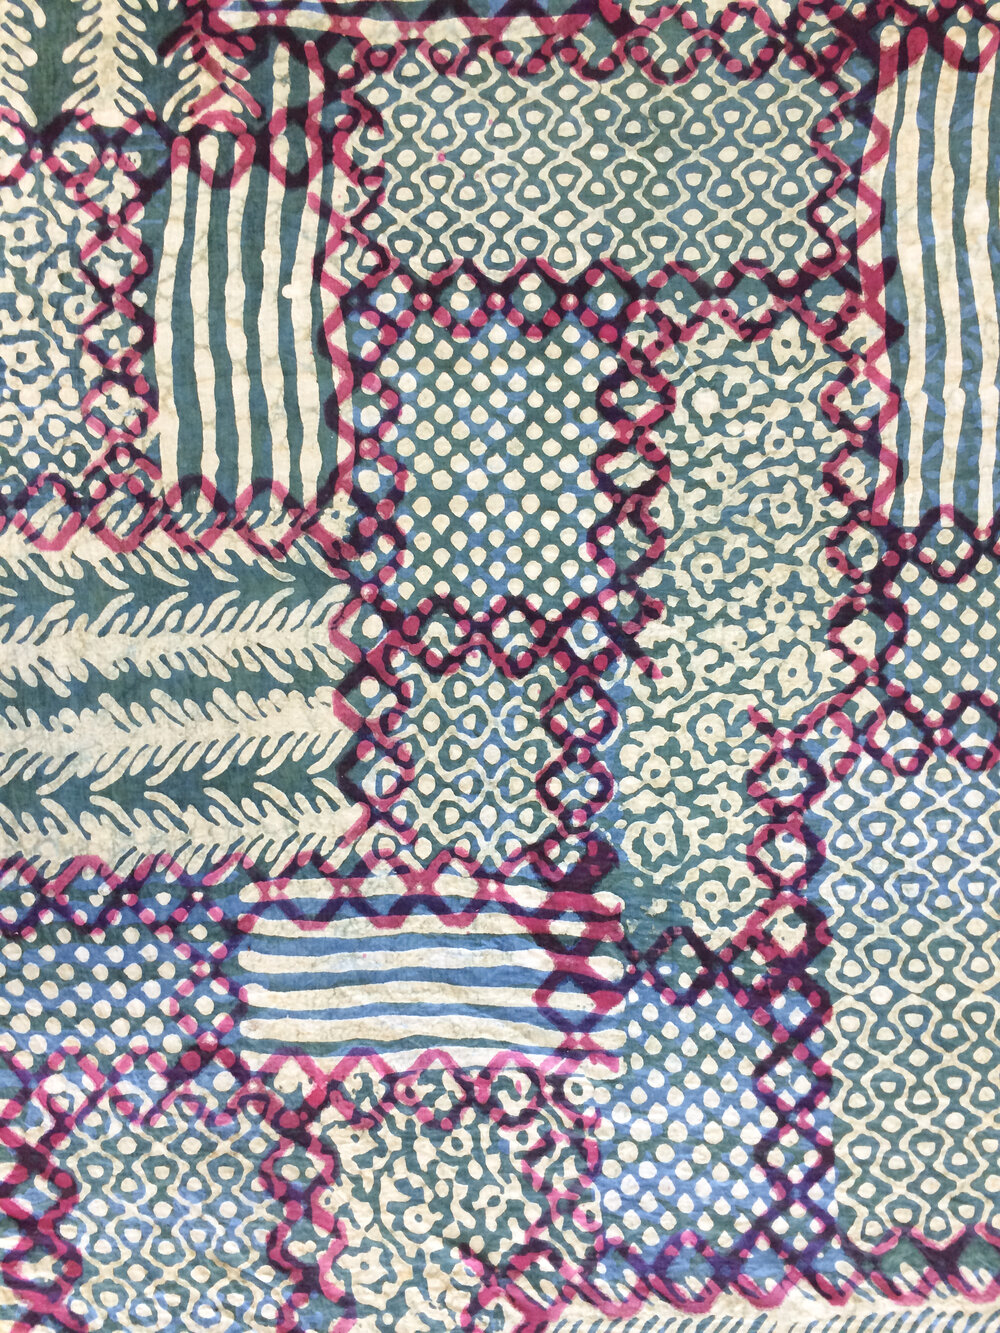 Patchwork   Mud resist indigo/pomegranate dyed sample with pigment print, made in India during block printing workshop  January 2018.